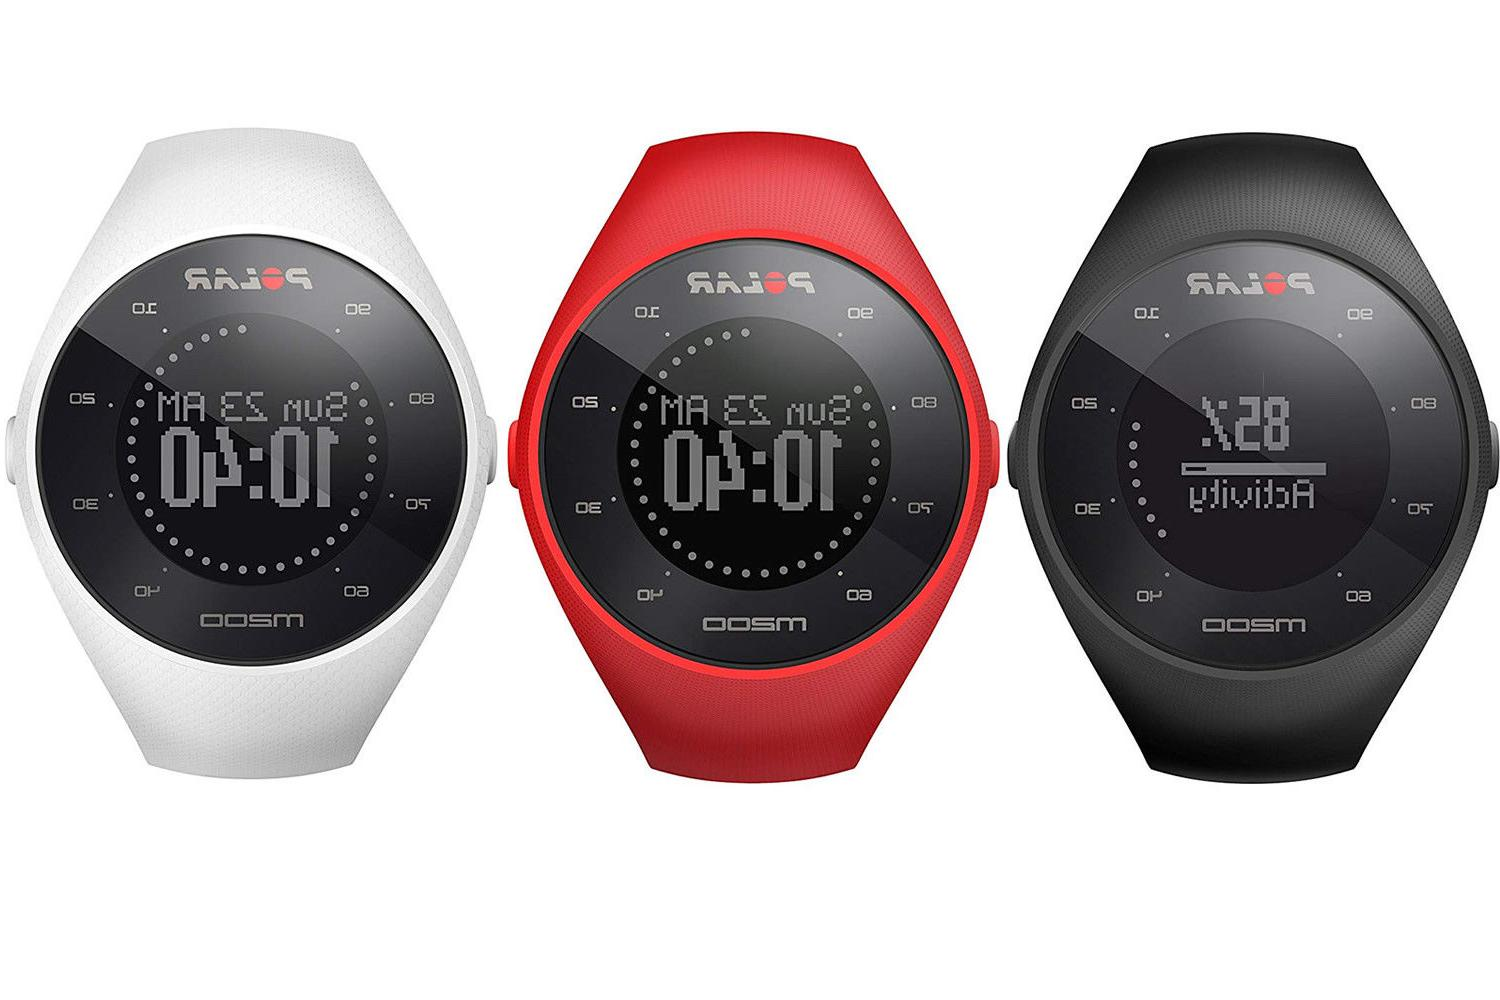 new m200 gps running watch with heart